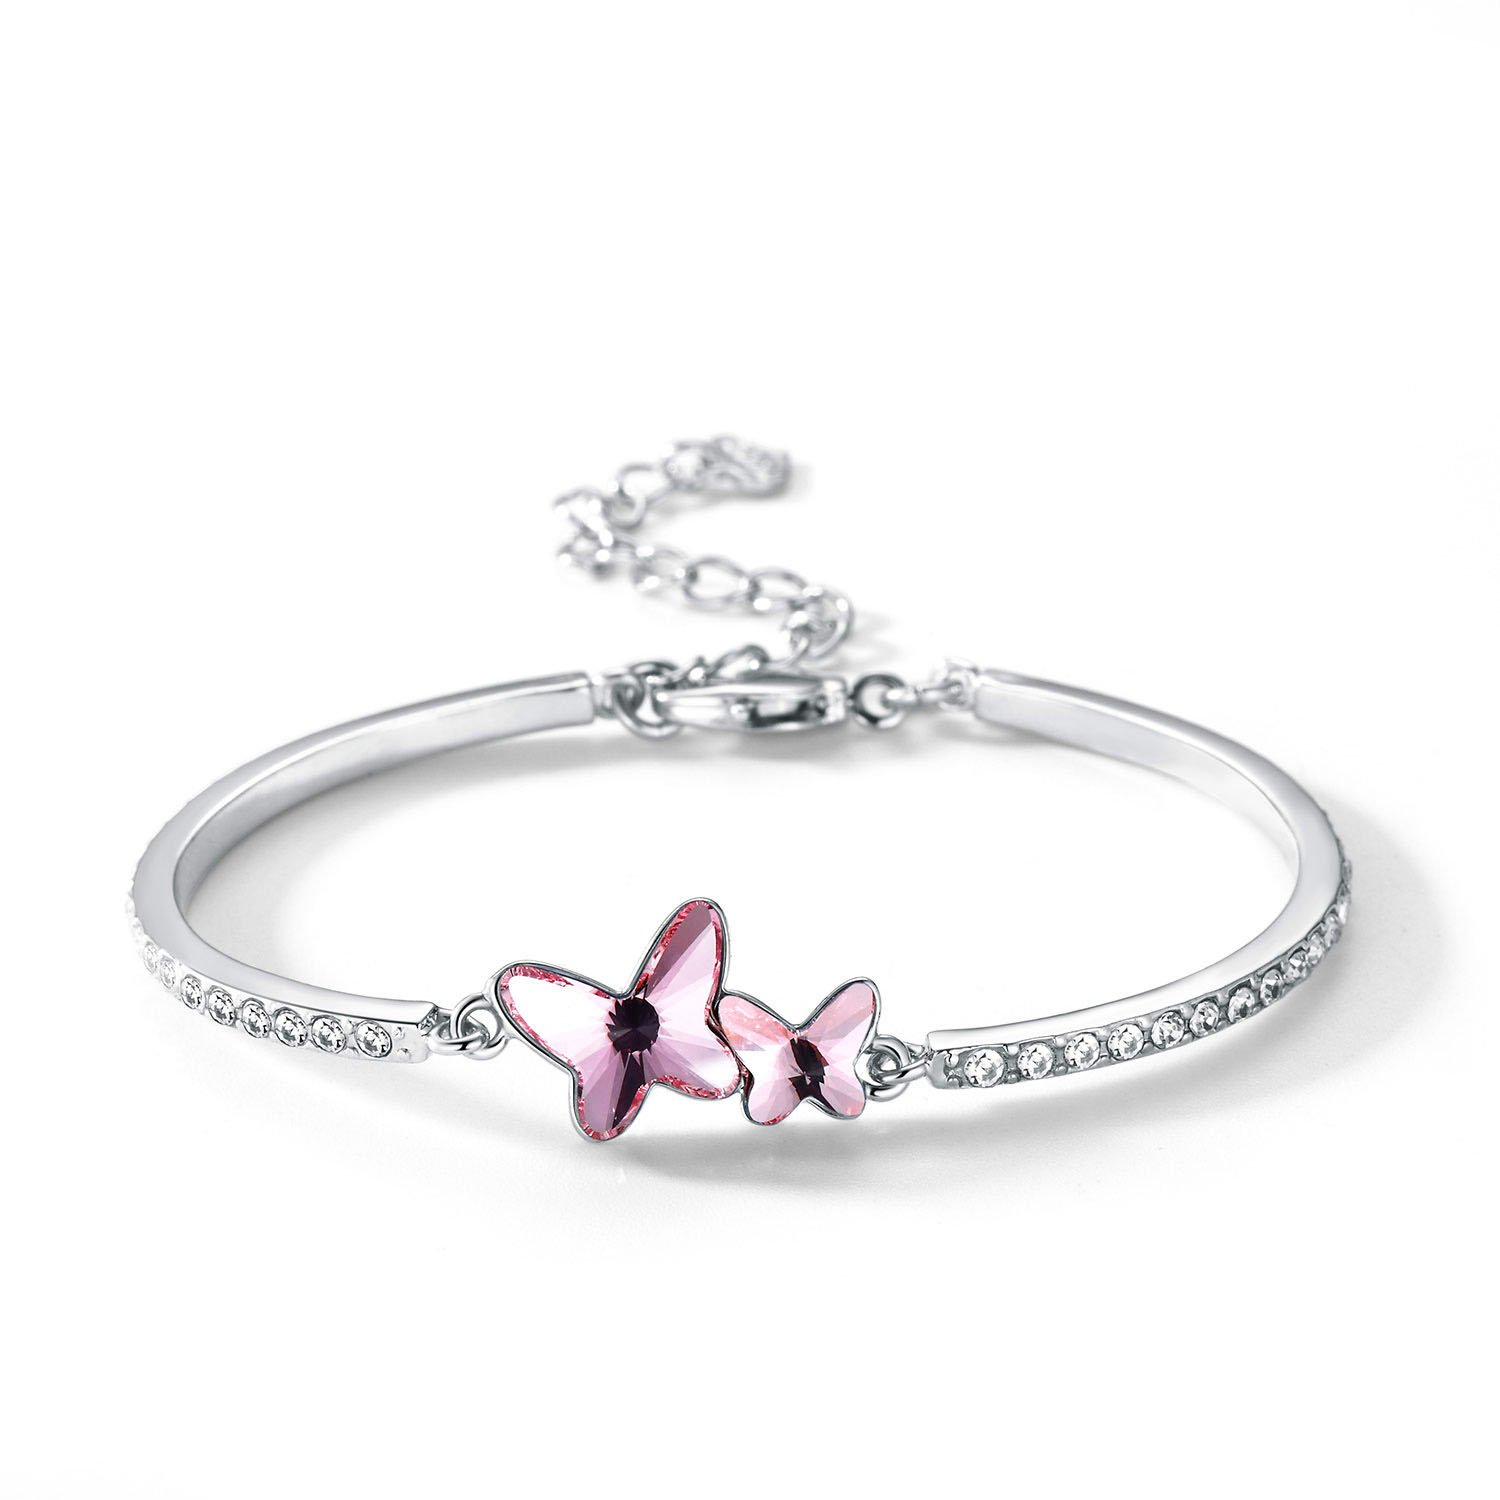 Butterfly Bangle Bracelet, Valentine's Day Gift T400 Jewelers Dream Chasers Bracelet Made with Swarovski Crystals (Pink, Eco Alloy)